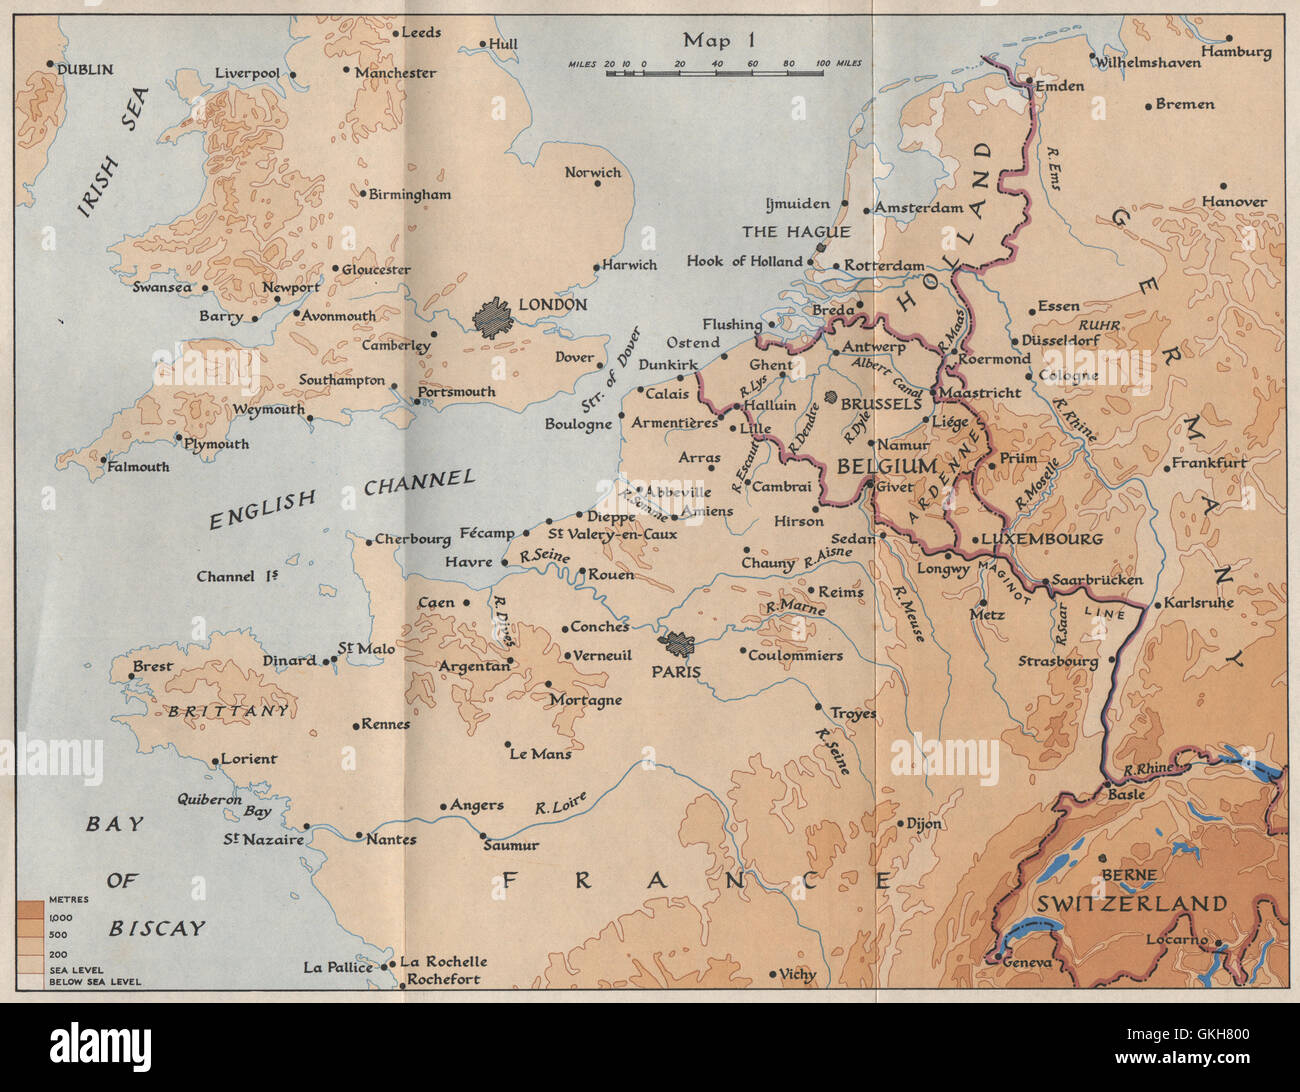 Map Of North West France.North West Europe In 1940 France Belgium Holland Germany Hmso